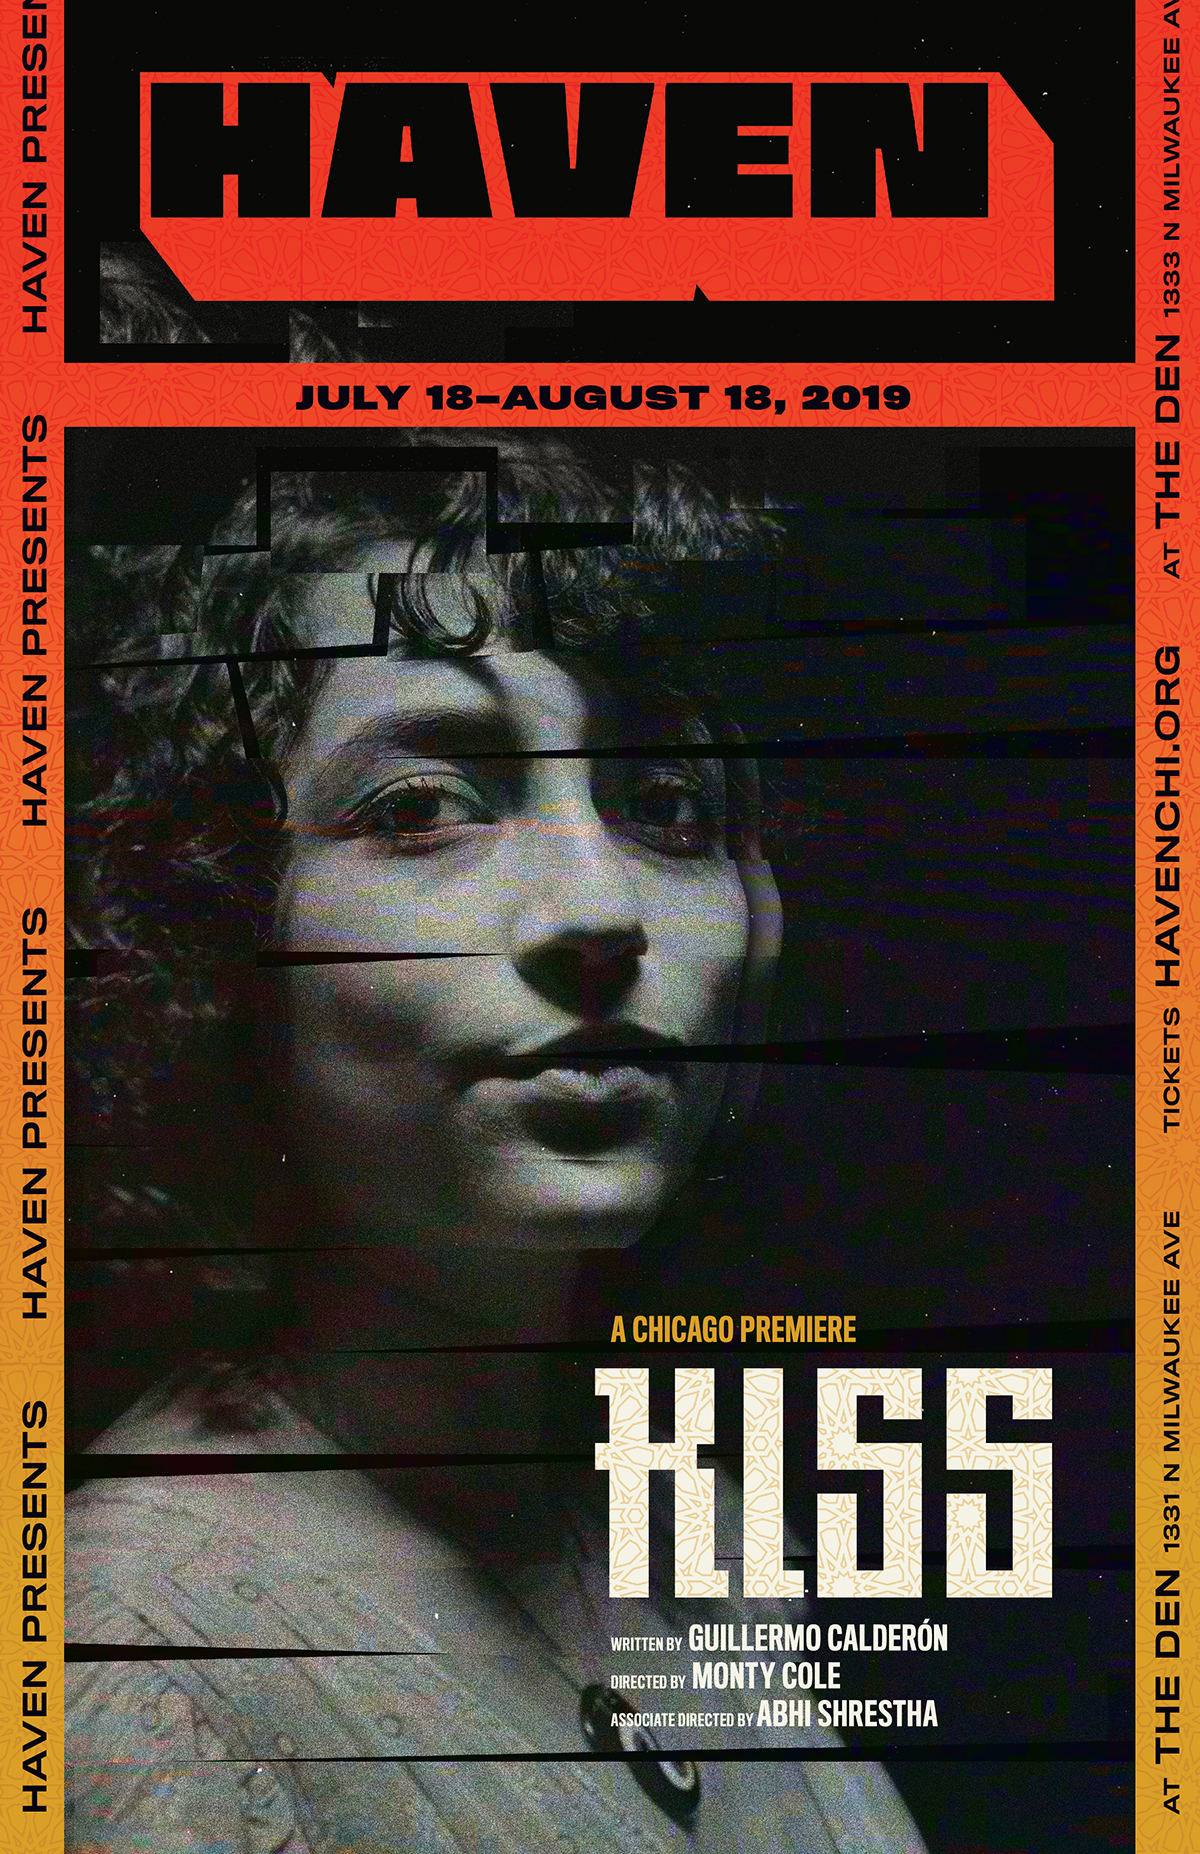 KISS - By Guillermo CalderónDirected by Monty ColeAssociate Directed by Abhi ShresthaJuly 18 – August 18, 2019 at The Den TheatreTwo couples meet for their weekly soap opera viewing party, but that standing double date quickly starts to feel like a soap opera itself when the friends unpack scandals, secrets and their heart-rending passions. Guillermo Calderón has written a bold and political theatrical experience that explodes the romantic drama and asks what it means to empathize with a culture and conflict that is not your own.